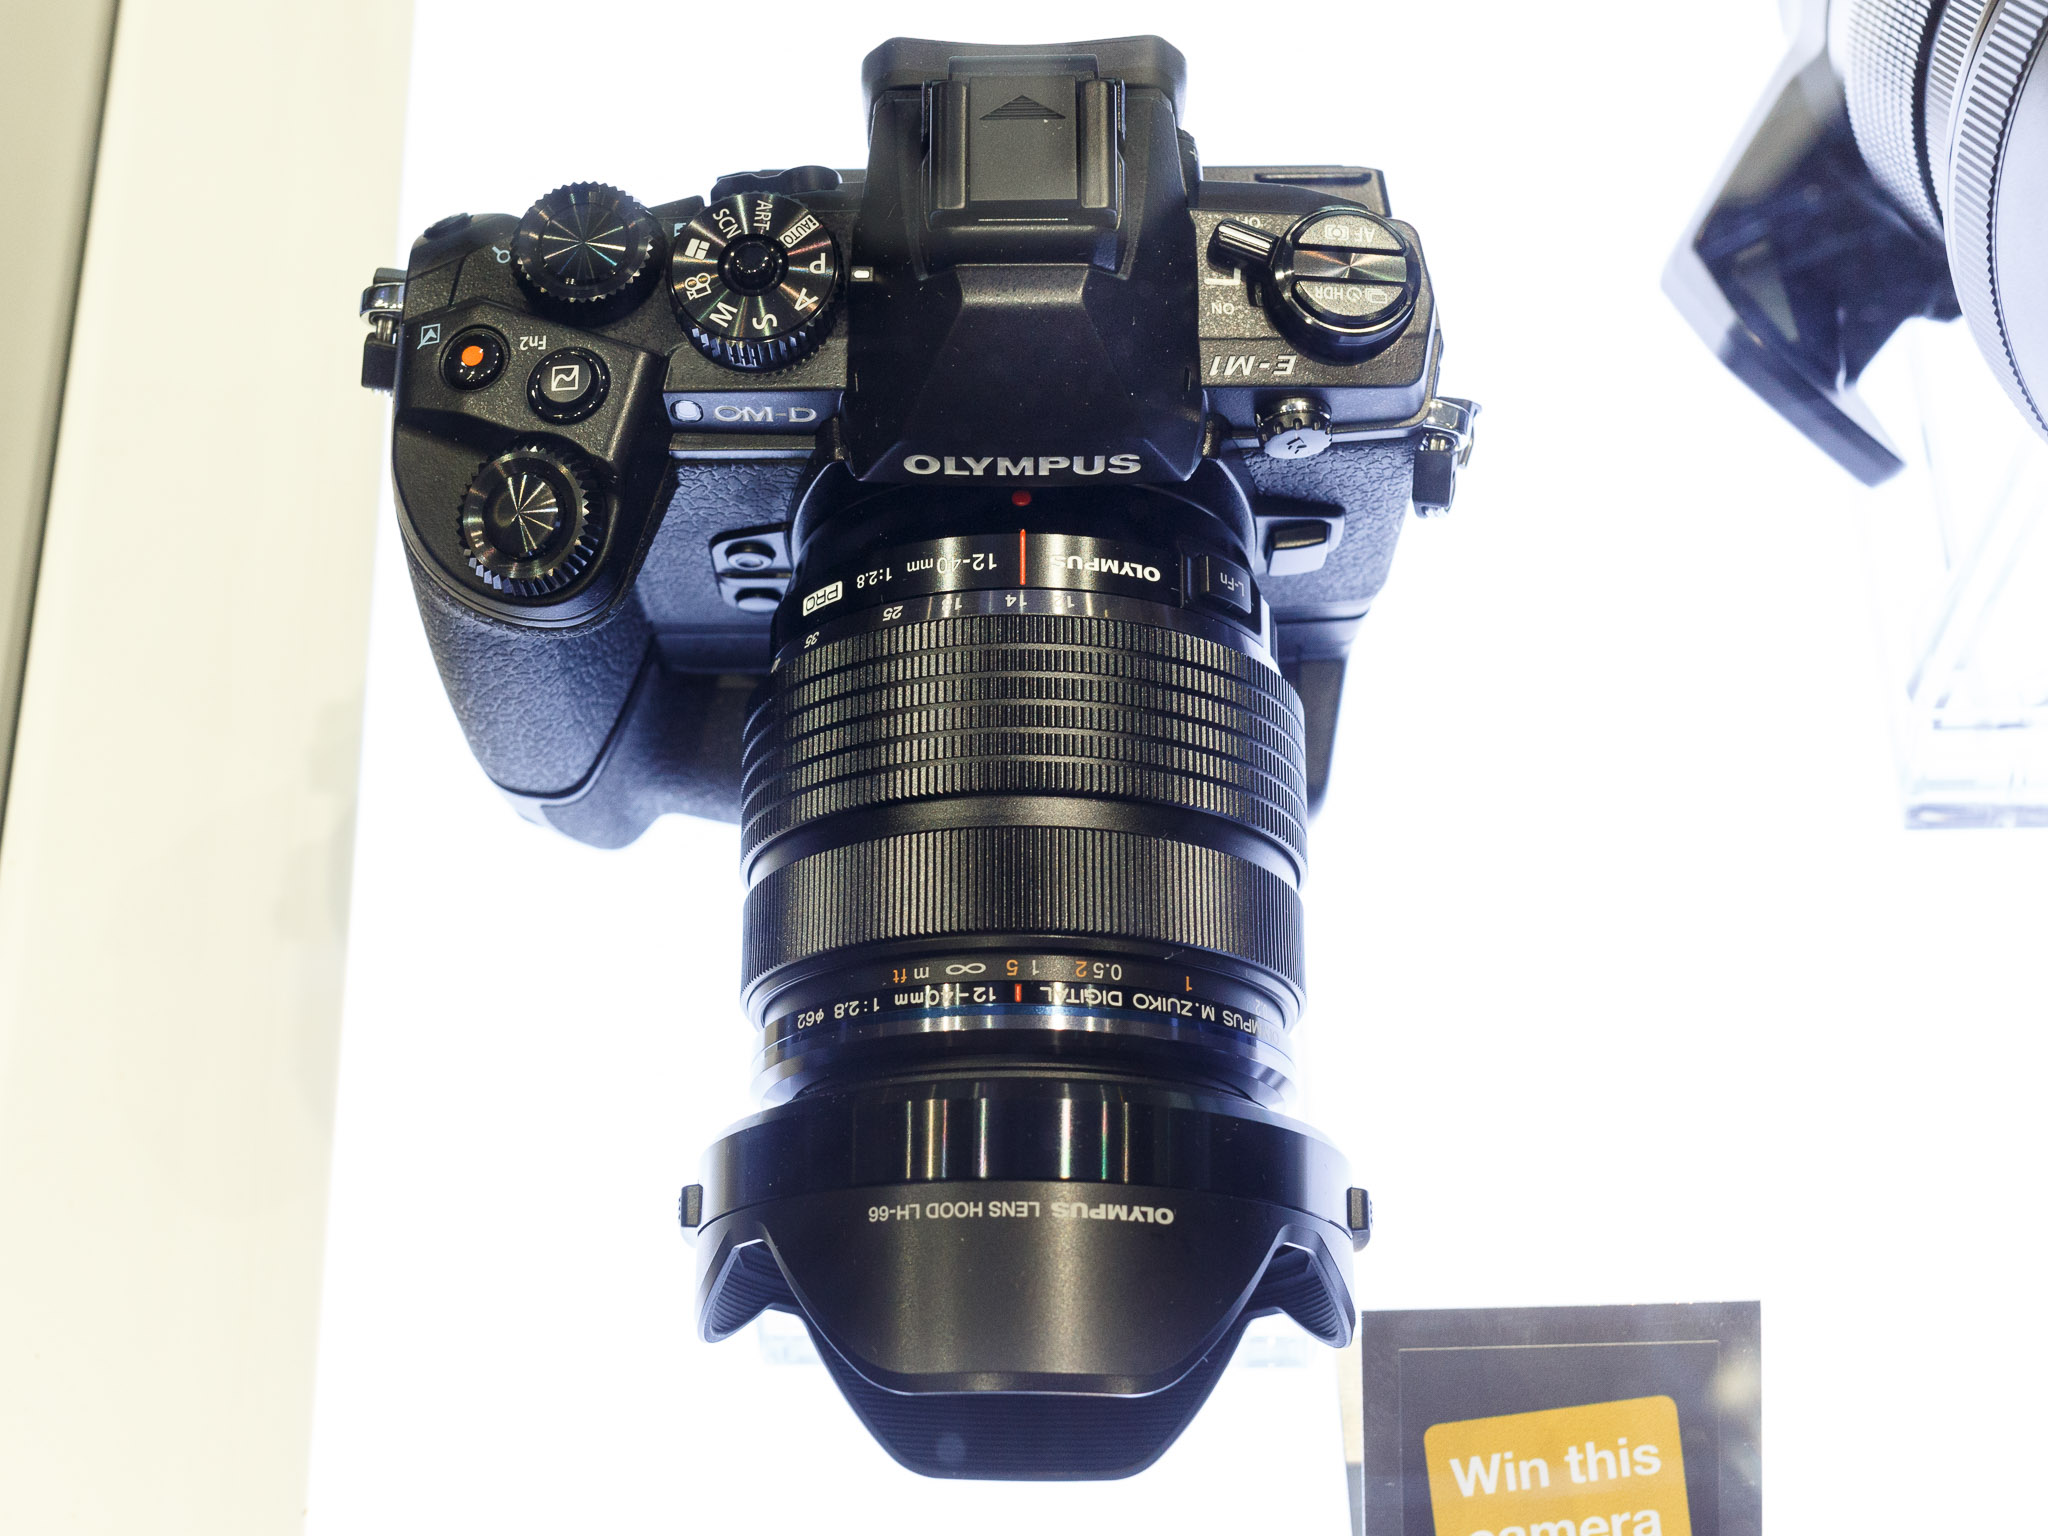 The OM-D E-M1 is the flagship of Olympus' mirrorless camera fleet.